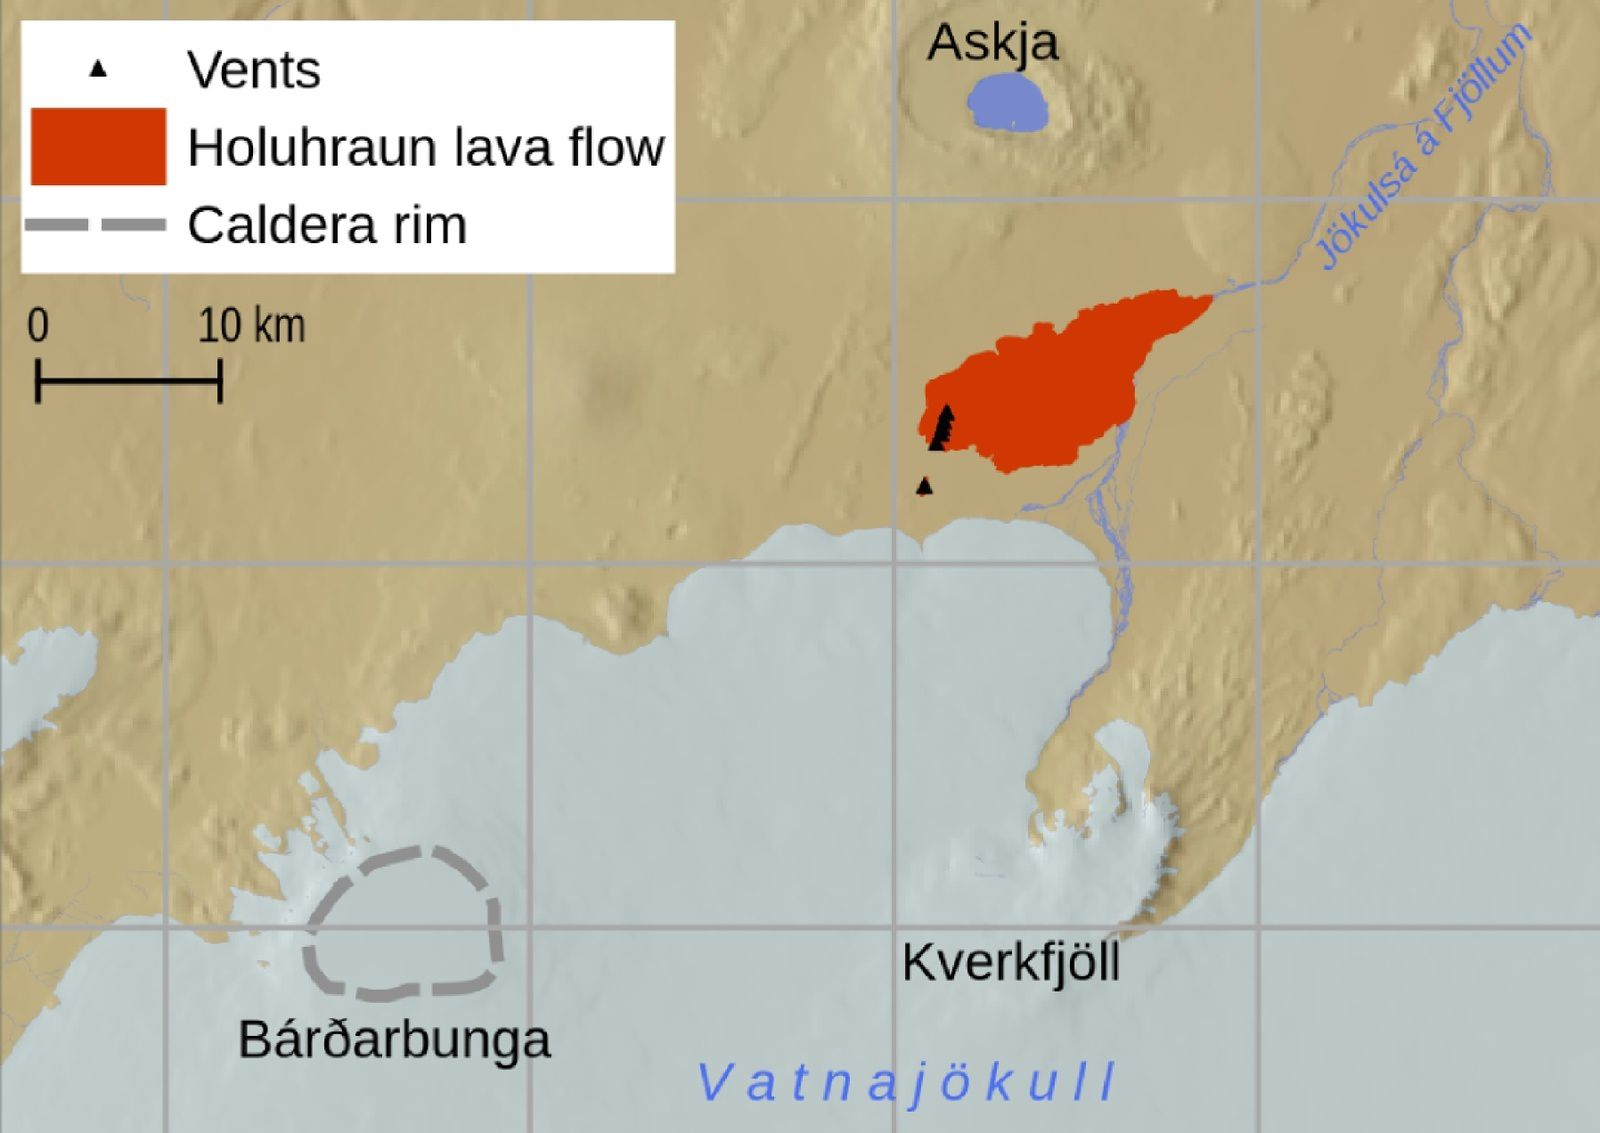 Overview of the 2014–2015 eruption at Holuhraun showing (a) the locations of the Icelandic towns and volcanoes, including the Bárðarbunga-Veiðivötn volcanic system. The red rectangle outlines the region shown in Figure 1b. (b) Map showing the Bárðarbunga caldera (dashed gray line) and the lava flow field and vents of the 2014–2015 eruption. The extent of the lava flow was digitized from a SENTINEL radar image produced by the University of Iceland. Vent locations have been drawn from Operational Land Imager (on Landsat 8) acquired on 6 September 2014 - doc. Dr.Anja Schmidt & al réf en sources